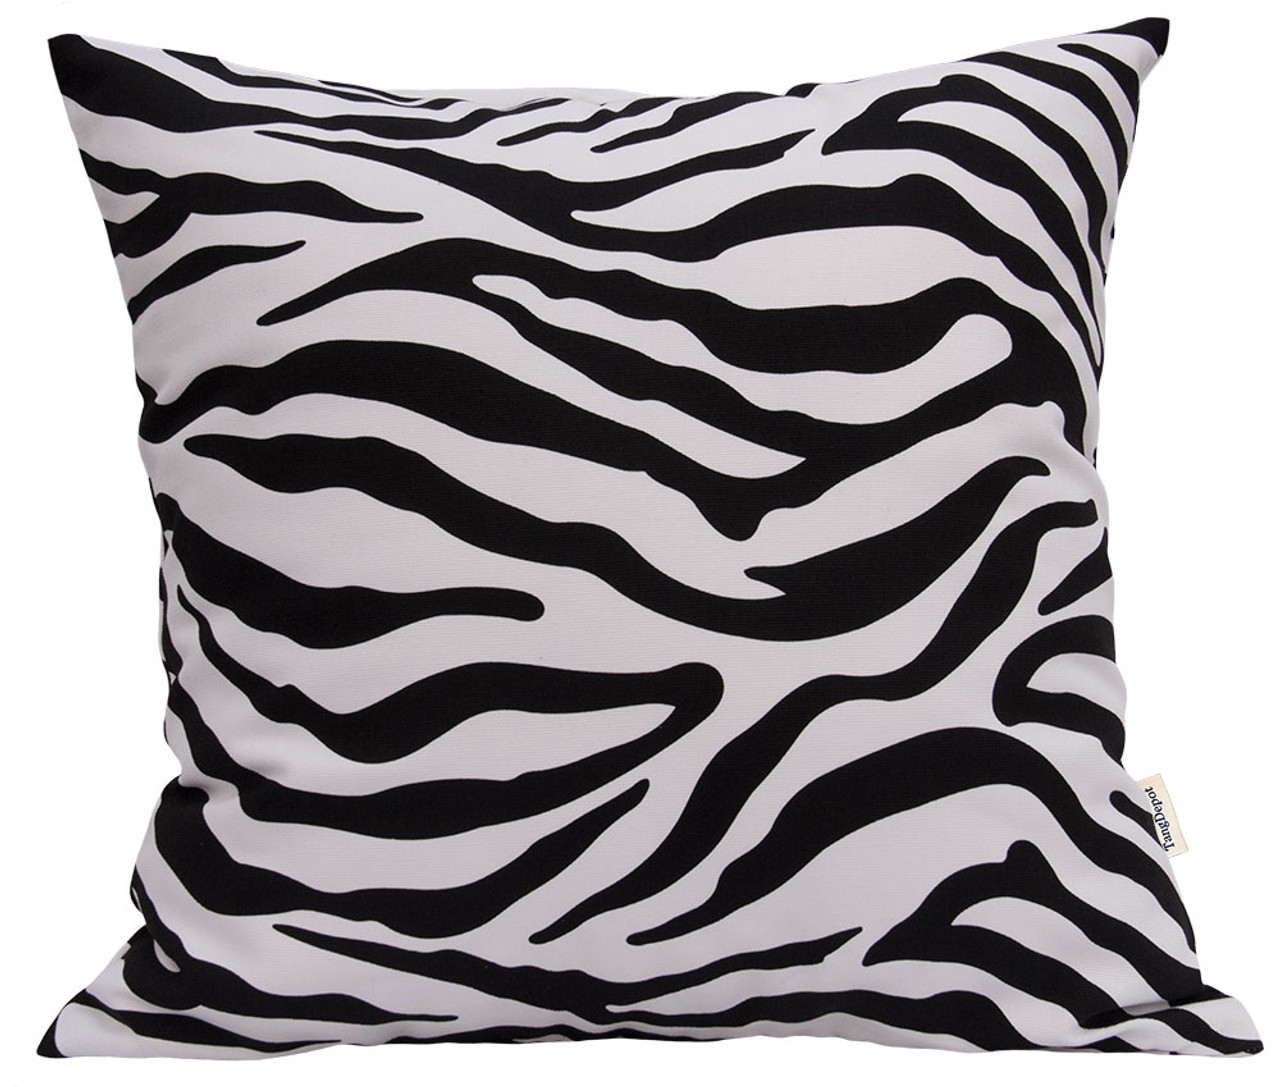 TangDepot Animal Skin Pattern 100% Cotton Canvas Throw Pillow Cover/Euro Sham/Cushion Sham, Many Color & Size options